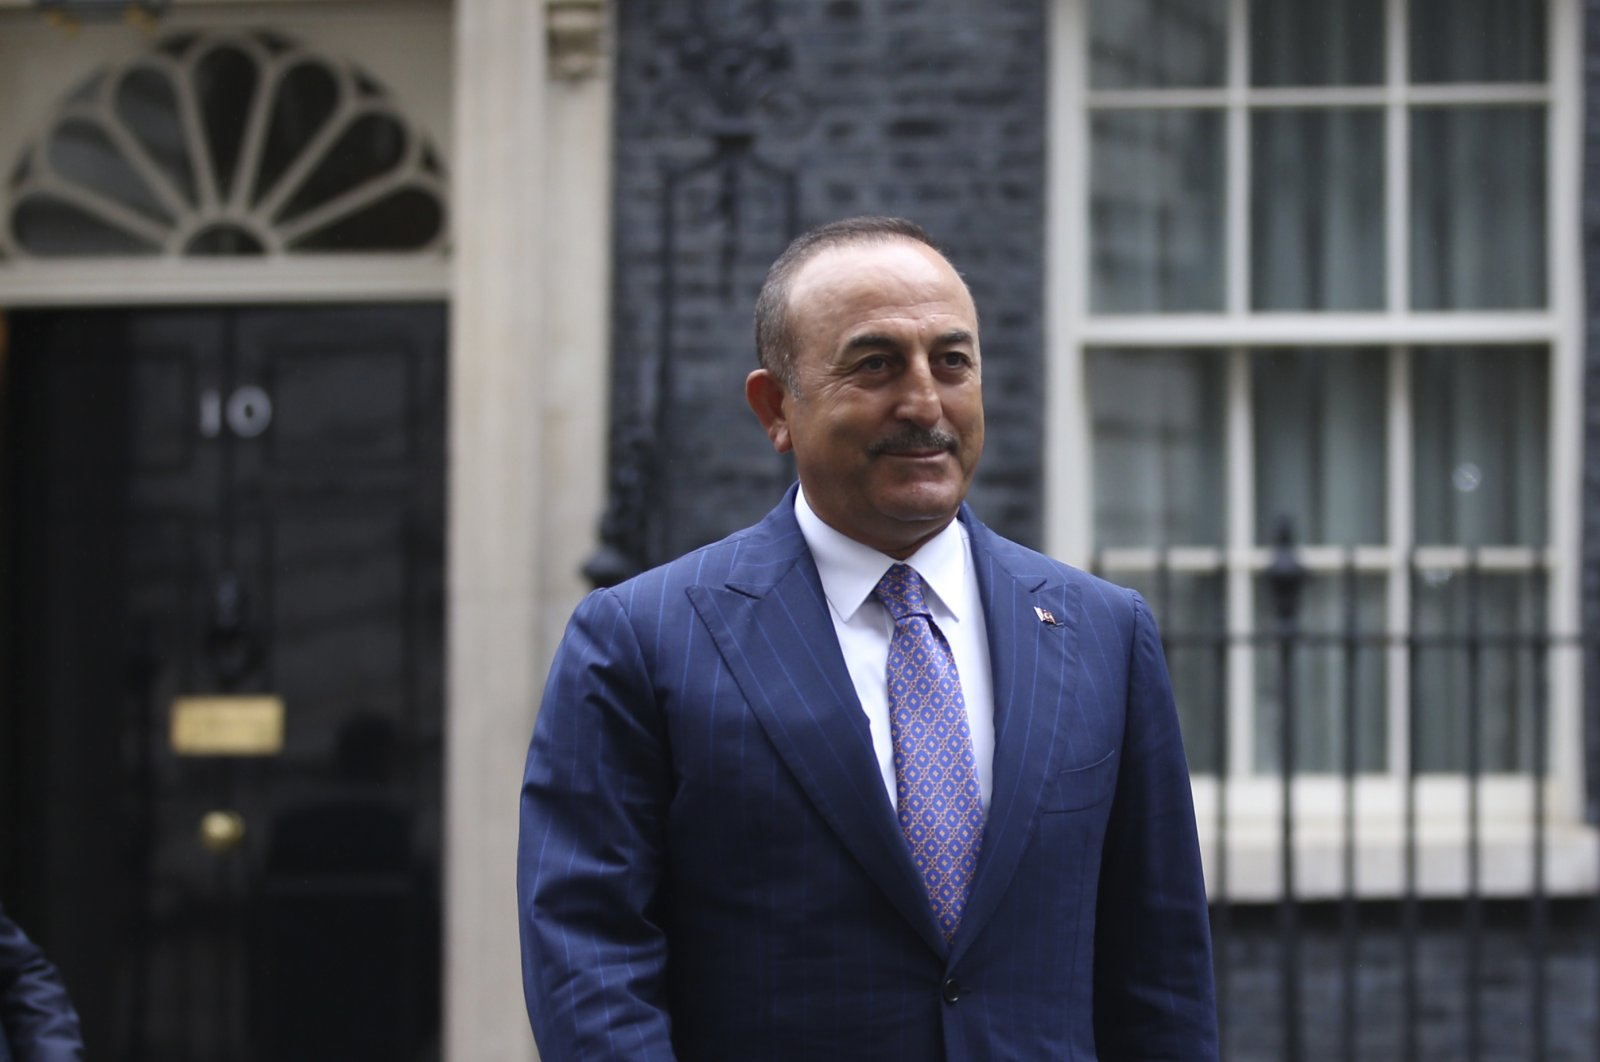 Foreign Minister Mevlüt Çavuşoğlu leaves number 10 Downing Street after a meeting with British Prime Minister Boris Johnson, in London, July 8, 2020. (AP)